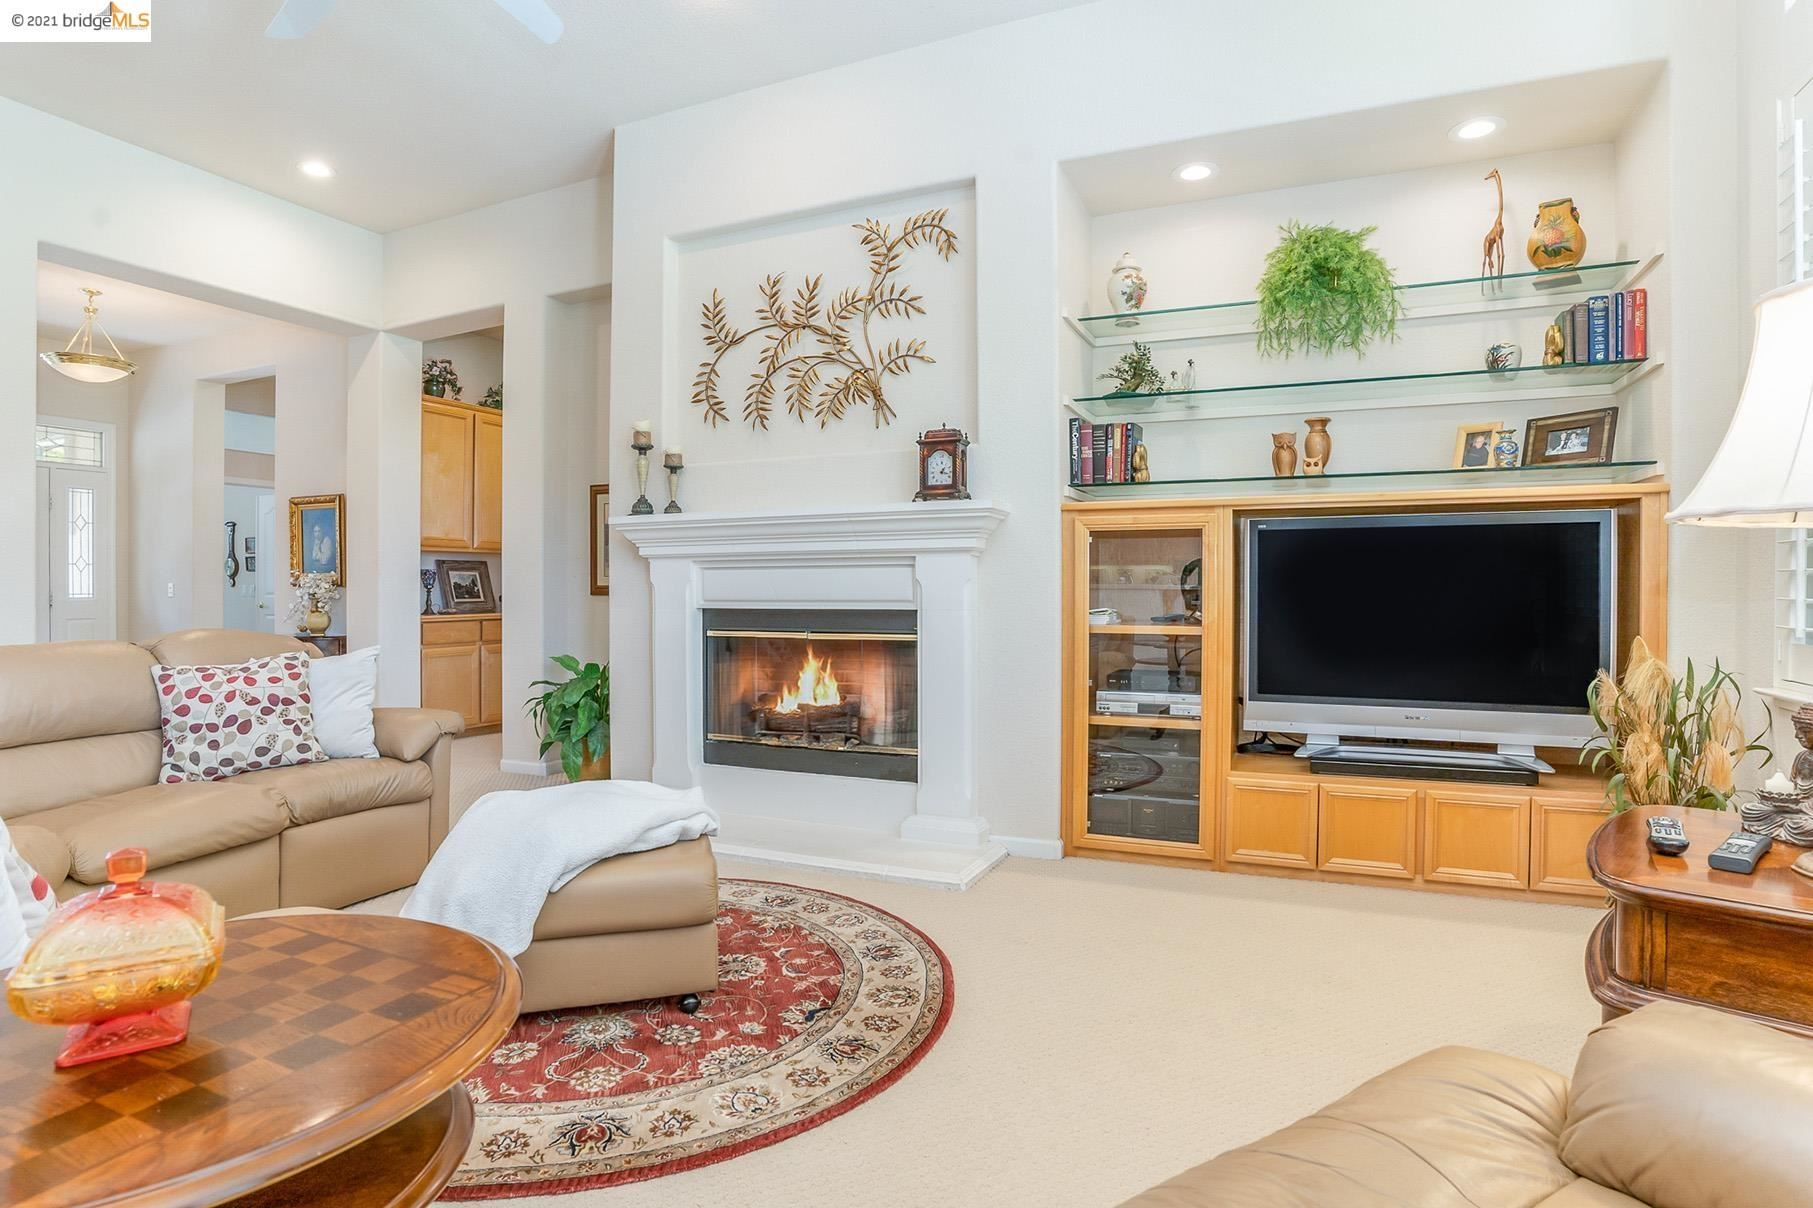 Photo of 456 Tayberry Ln, BRENTWOOD, CA 94513 (MLS # 40964881)